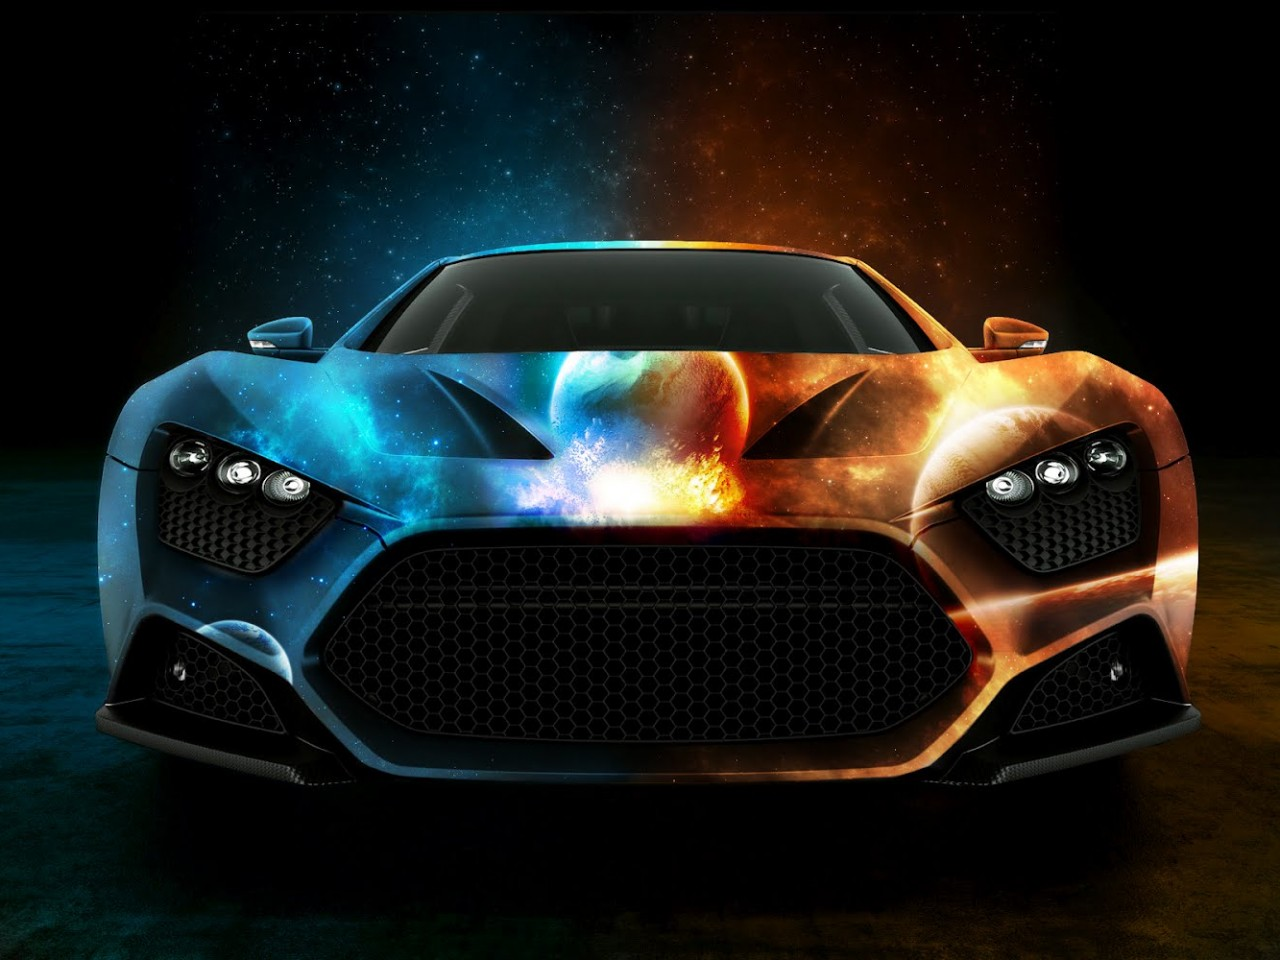 High Resolution Images Of Sports Cars